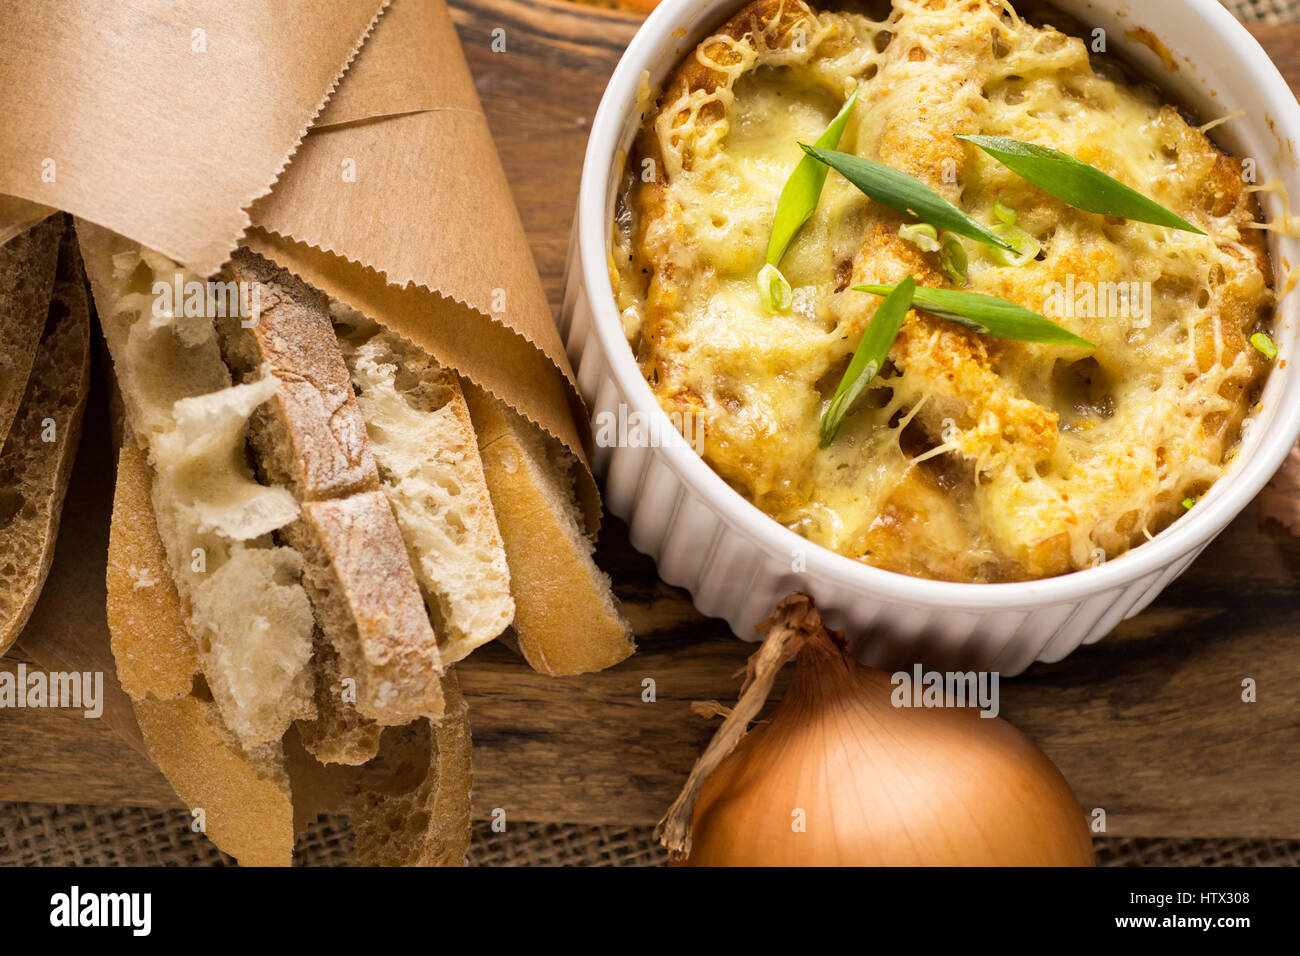 French Onion Soup with Dried Bread and Melted Cheese - Stock Image